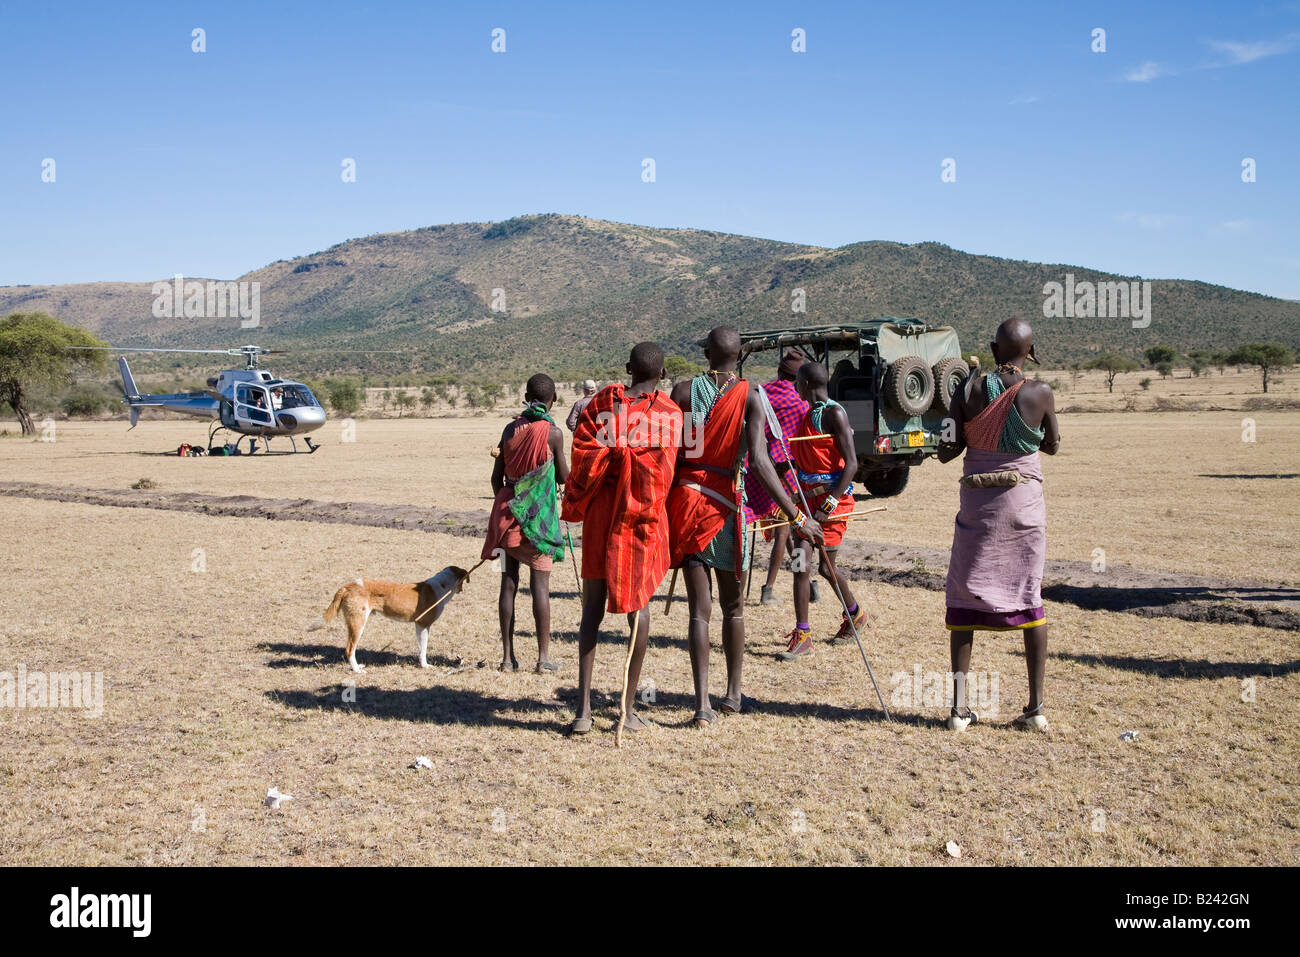 Curious young Masai Warriors arrive to greet a helicopter landing near their village in the Masai Mara of Kenya - Stock Image